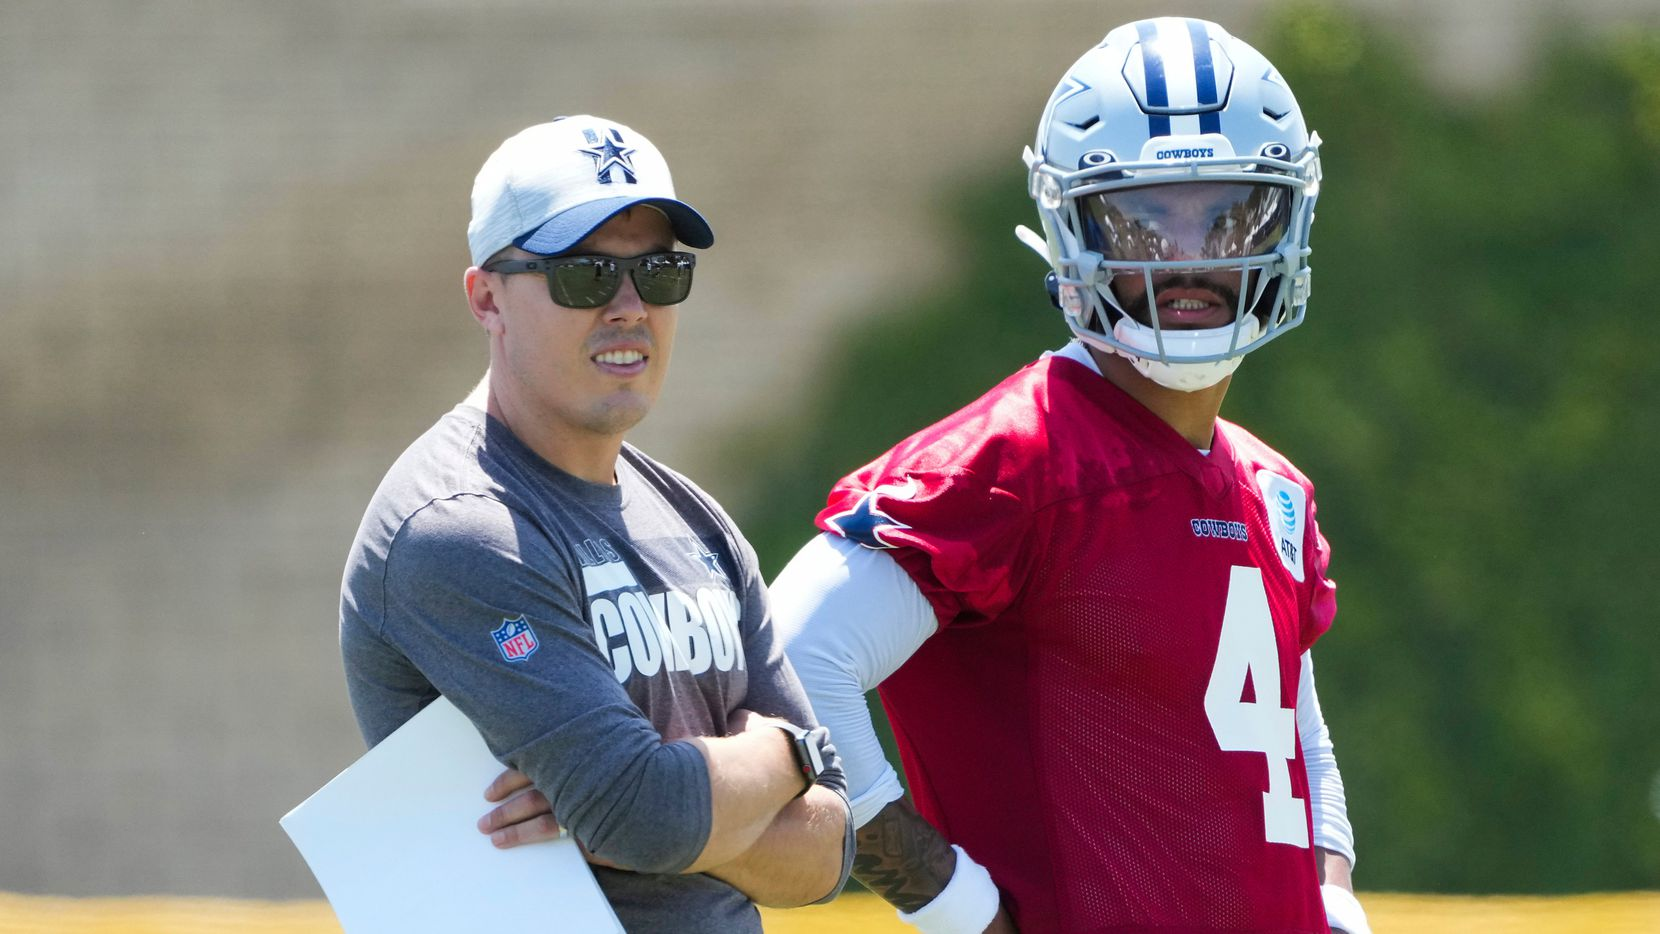 Dallas Cowboys quarterback Dak Prescott (4) talks with offensive coordinator Kellen Moore during the first practice of the team's training camp on Thursday, July 22, 2021, in Oxnard, Calif.